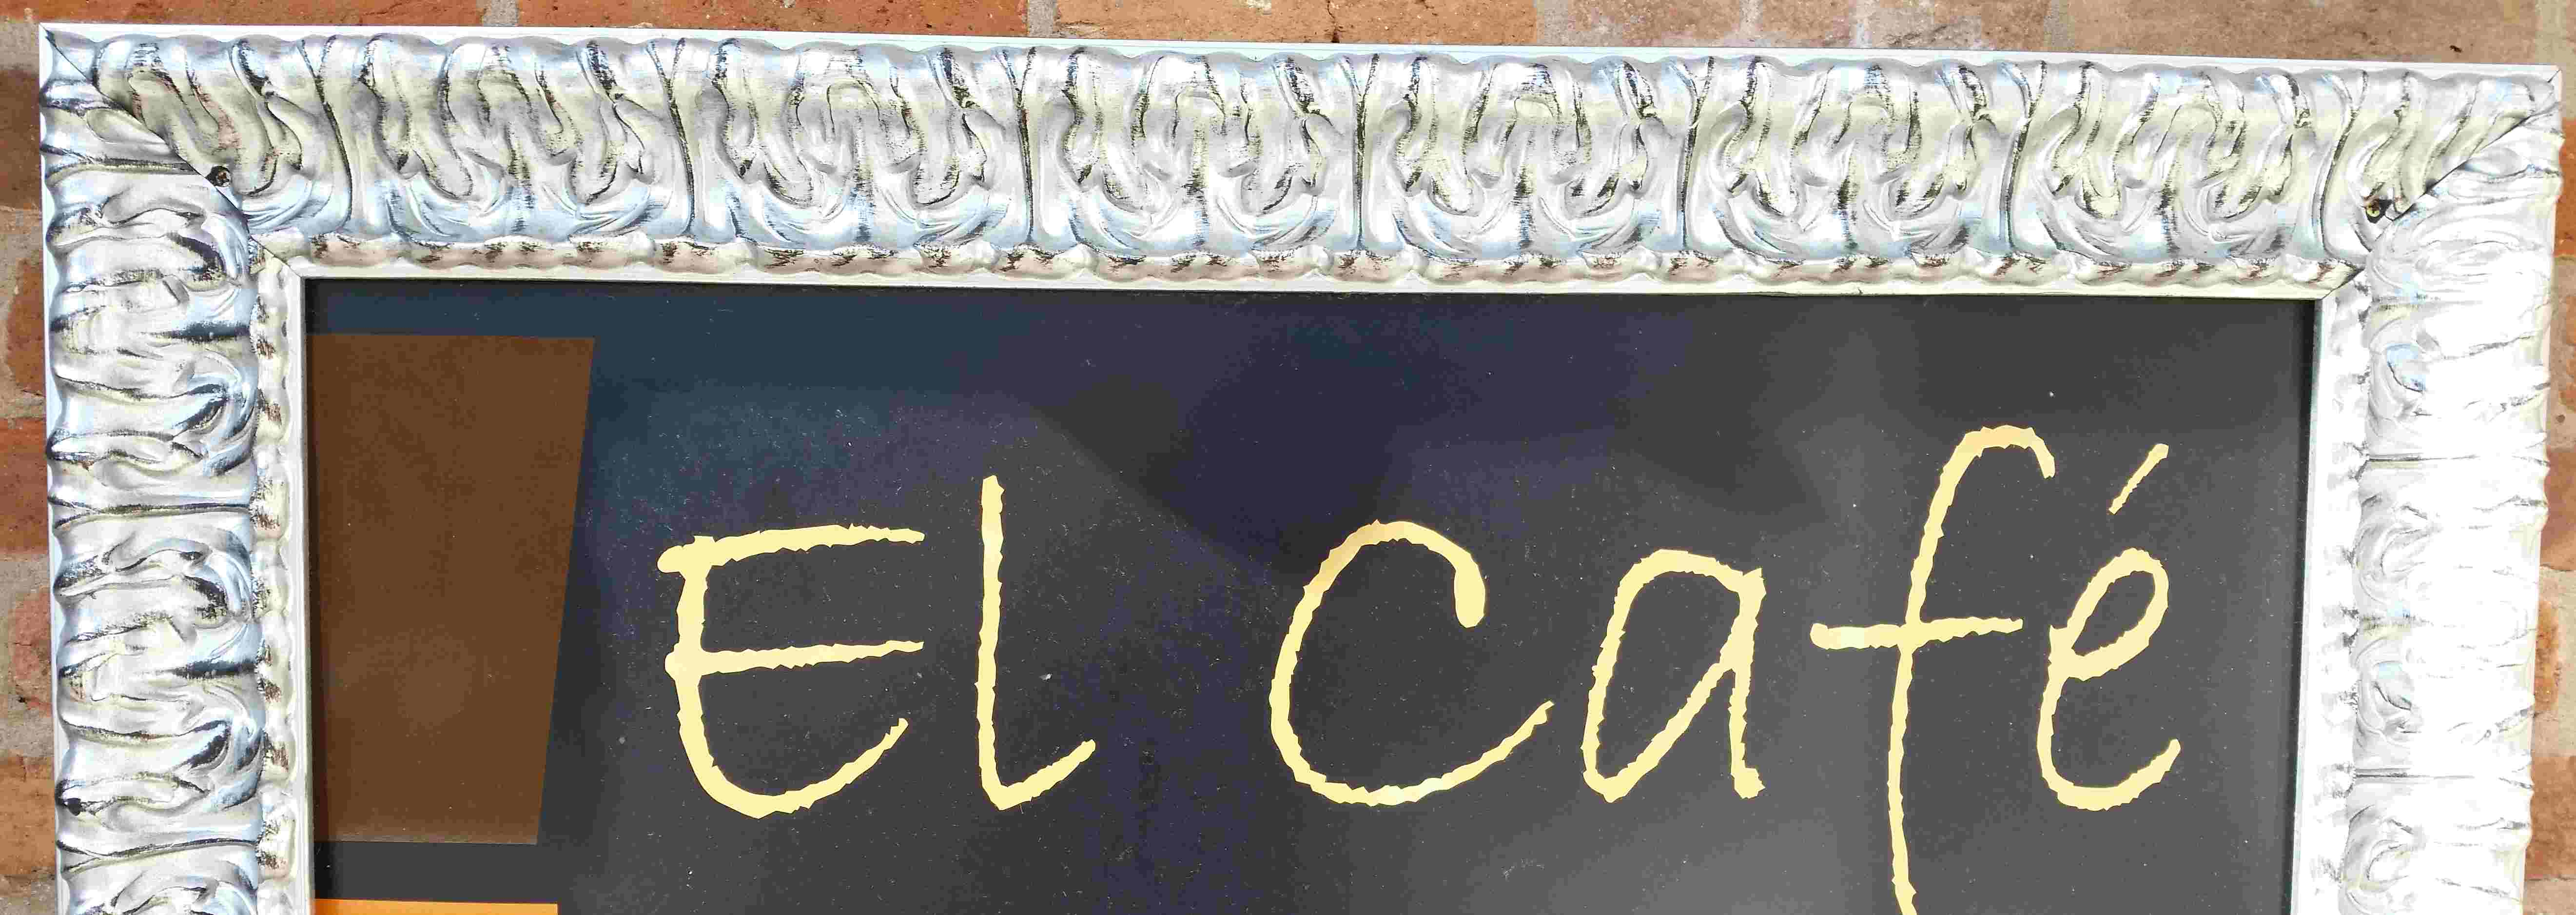 El Cafe', an excellent tapas bar in Shipston on Sour